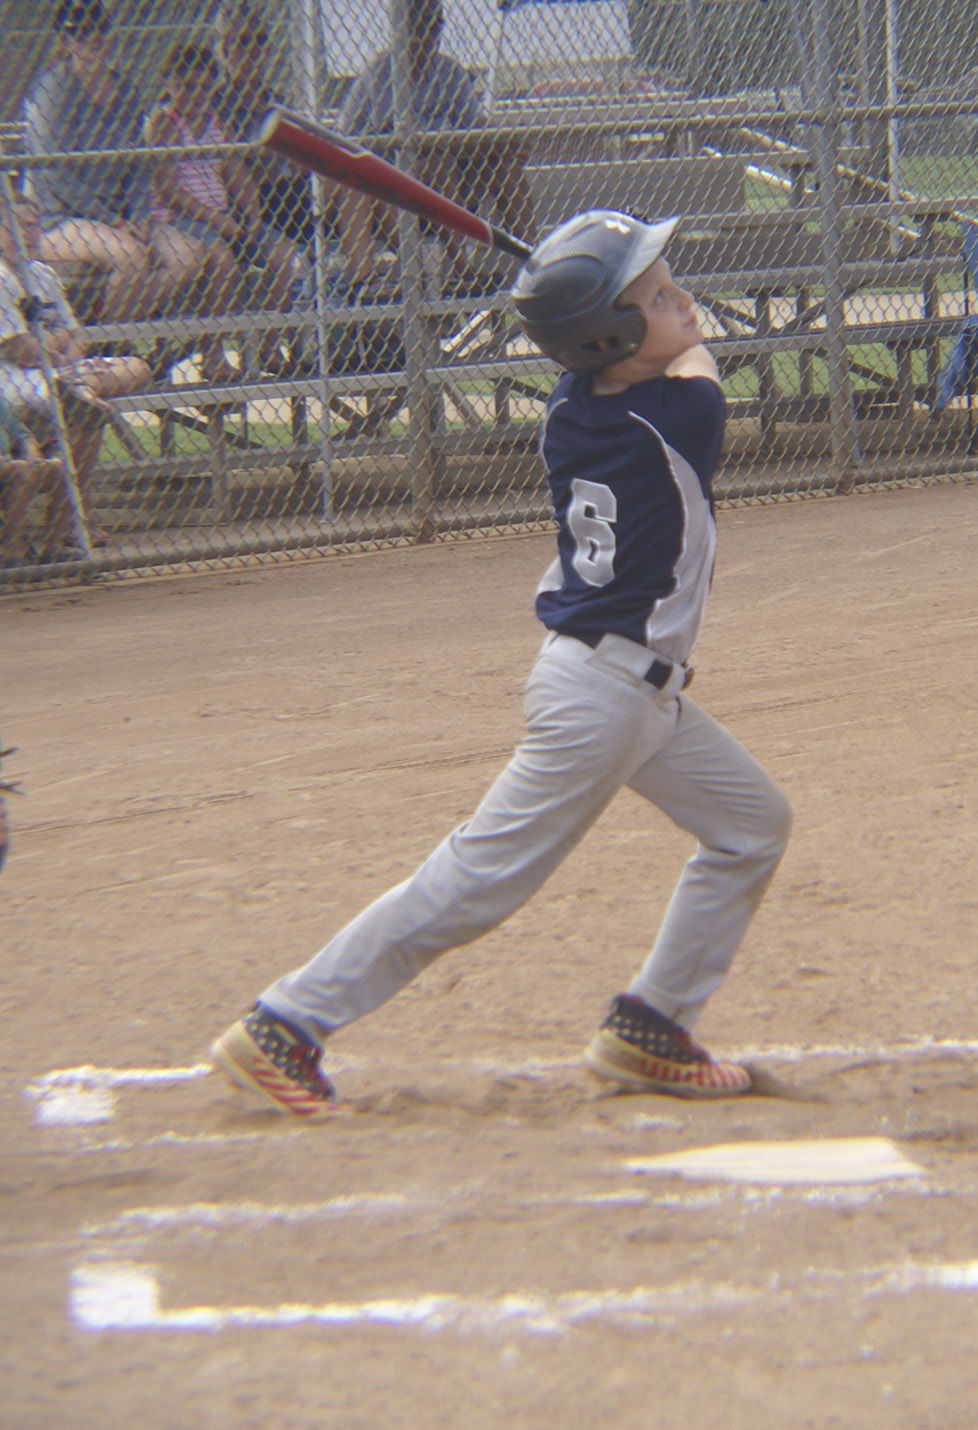 Enterprise plays host to Dixie Youth State Baseball